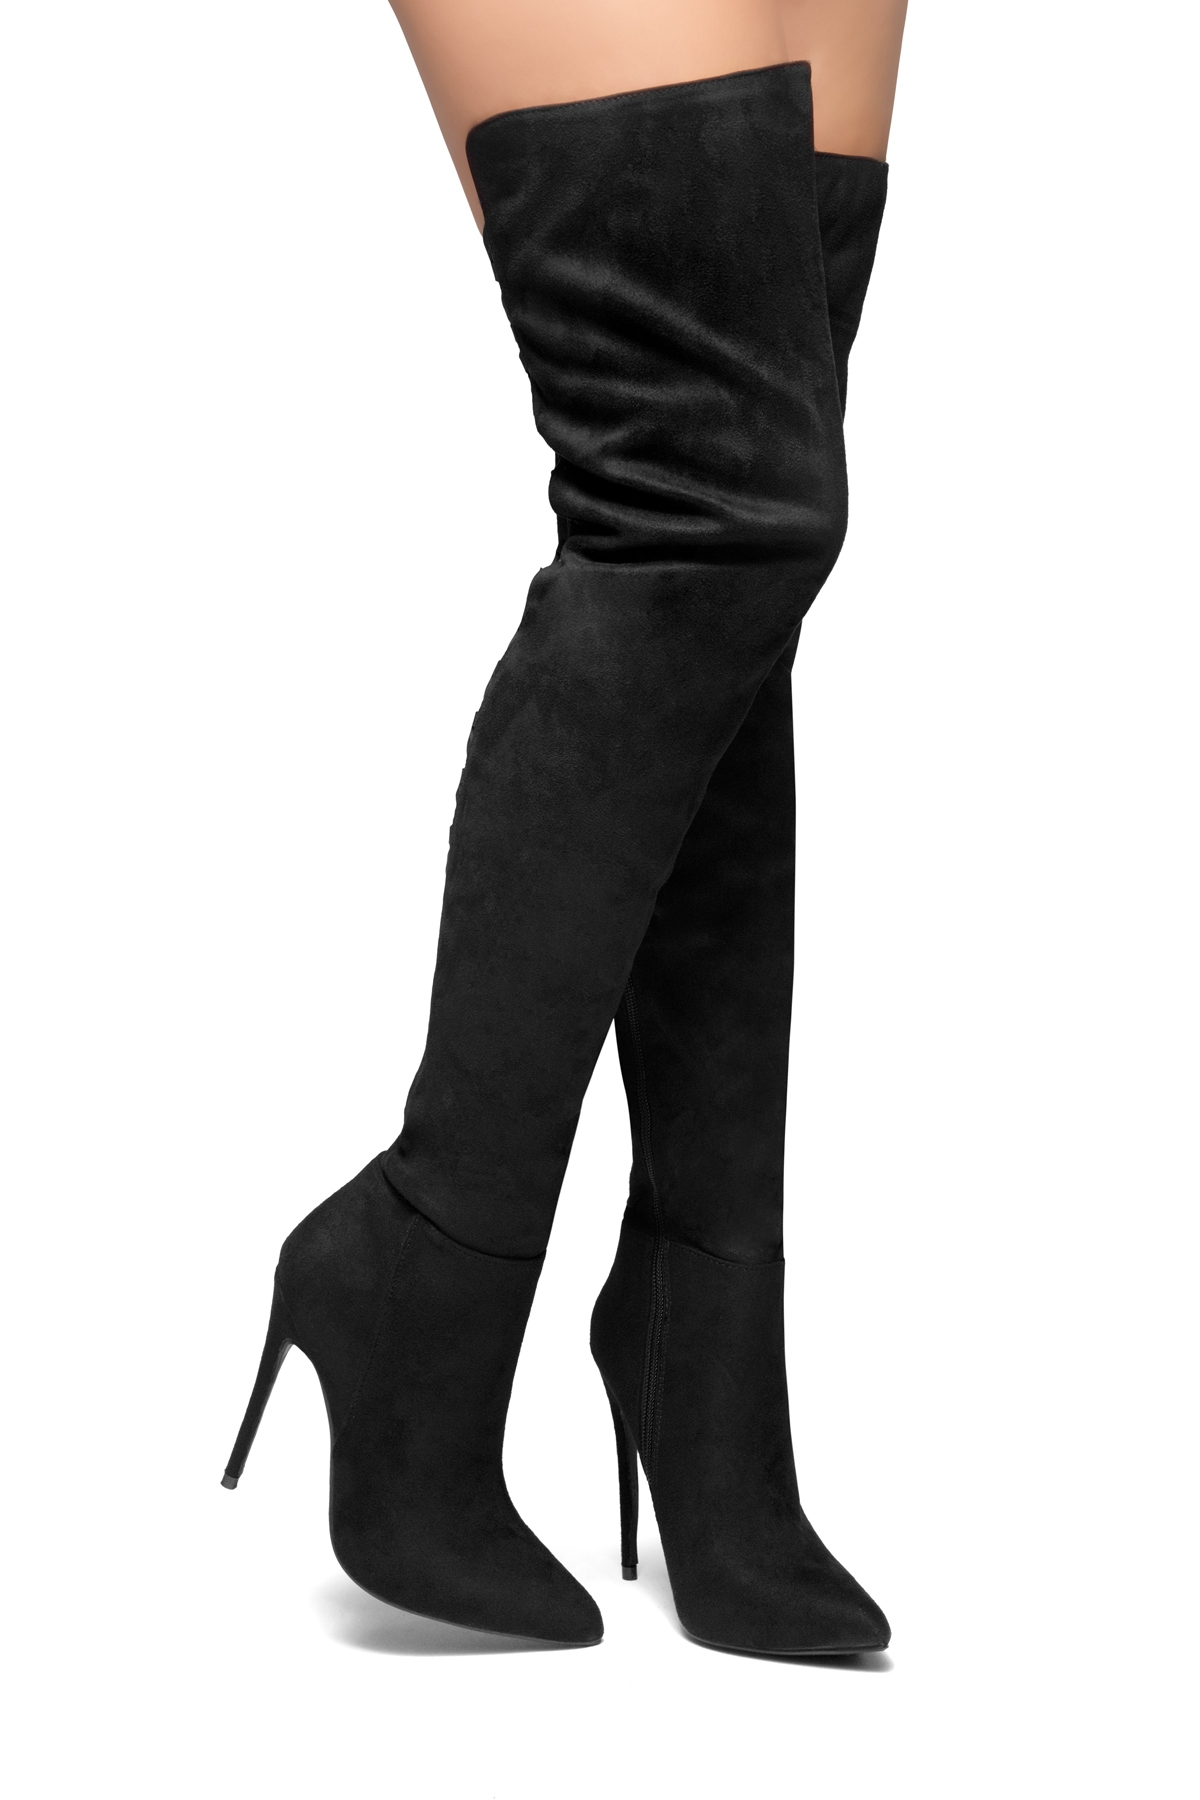 8899ad580c1 HerStyle Night Moves-Stiletto heel